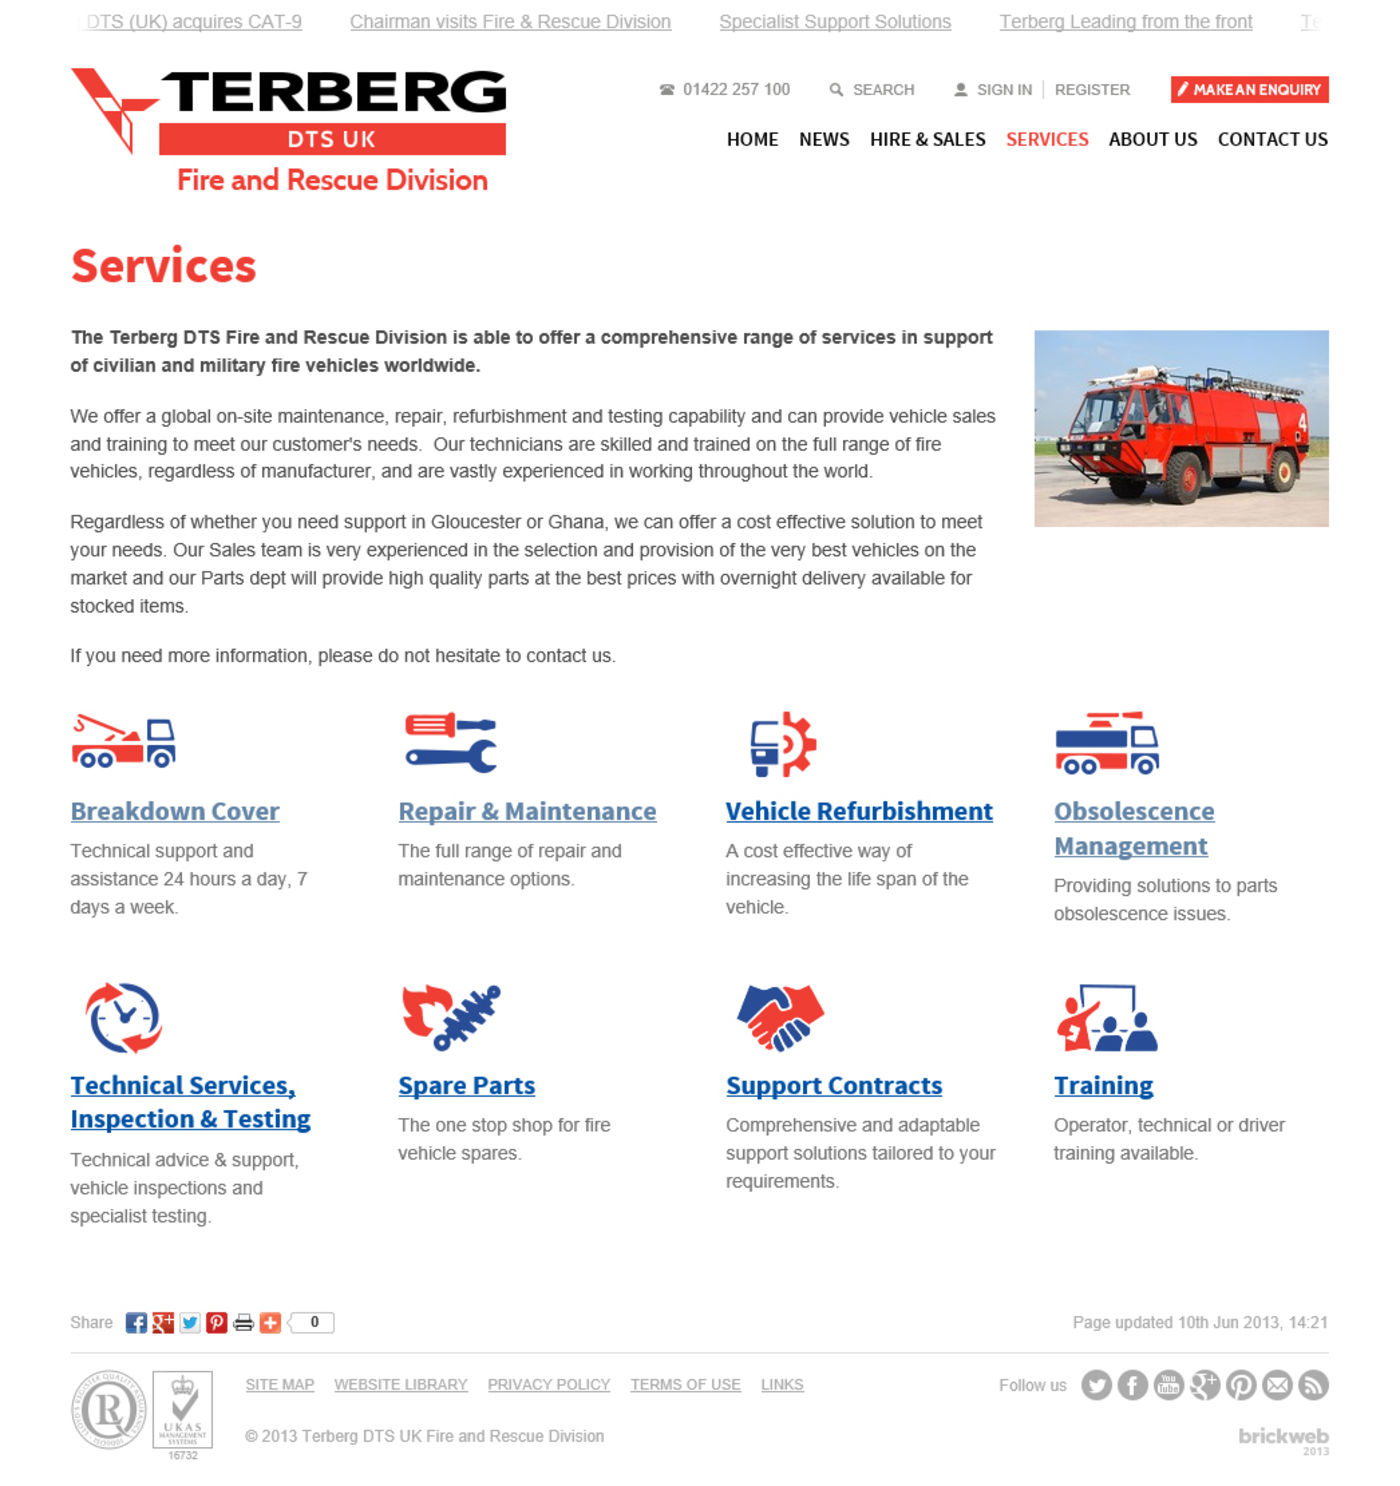 Terberg DTS UK 2013 Regular Page